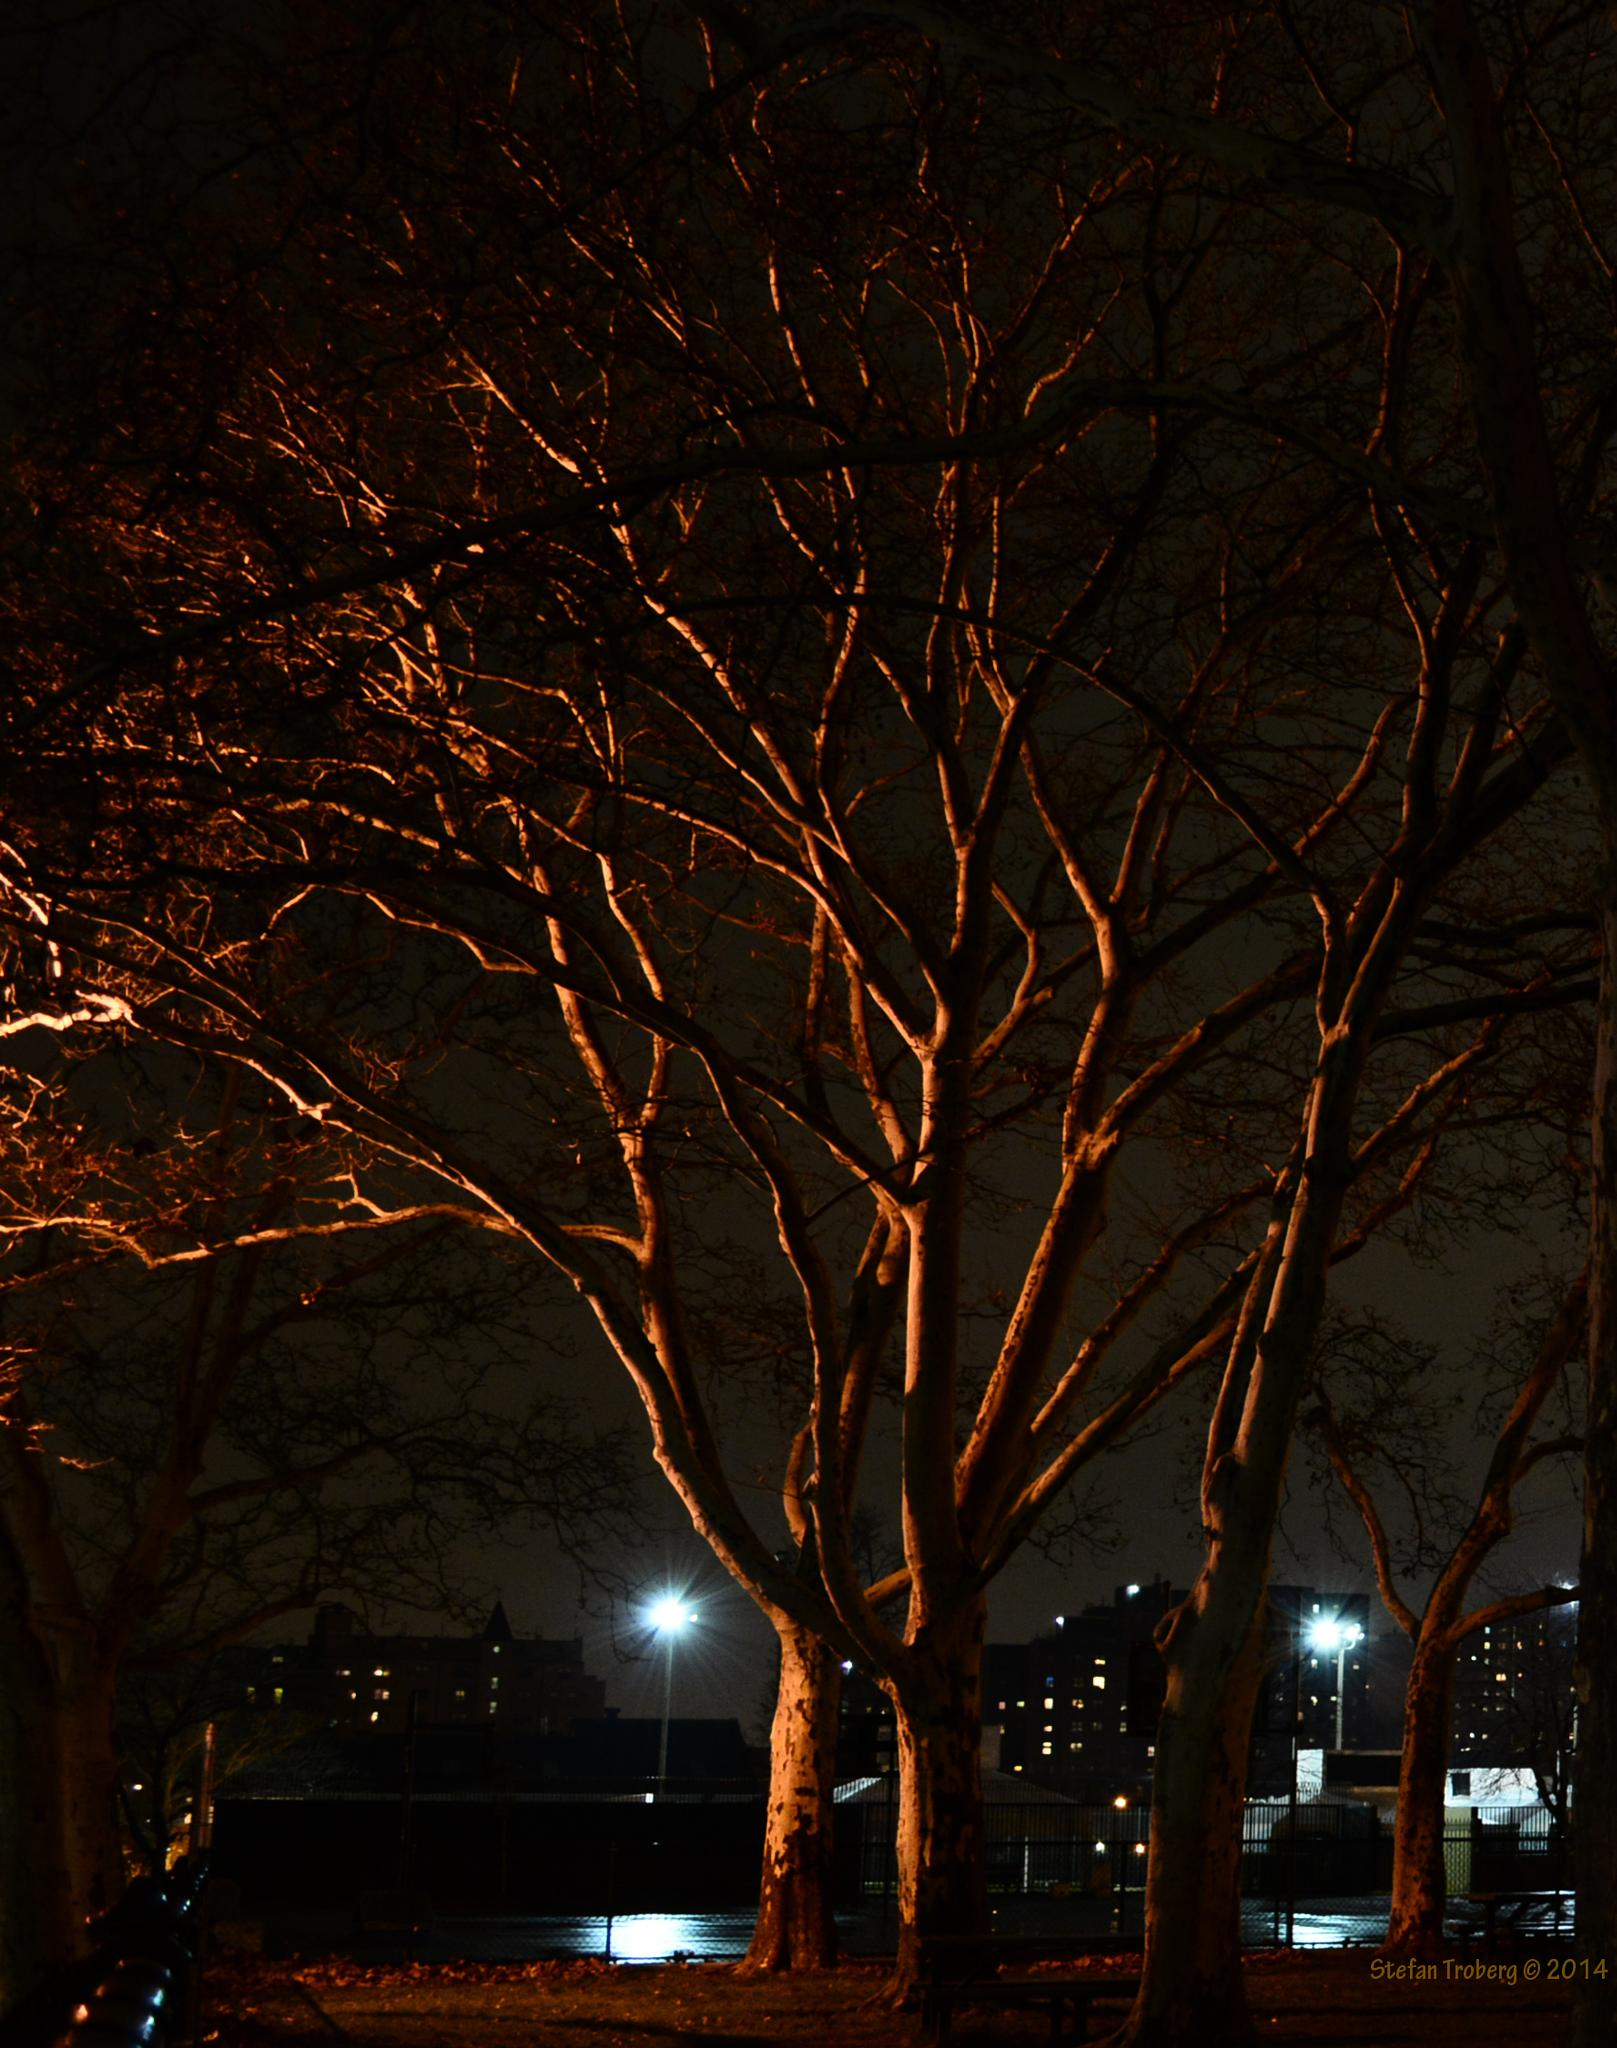 The tree glowing in the darkness away from street lights by Stefan Troberg